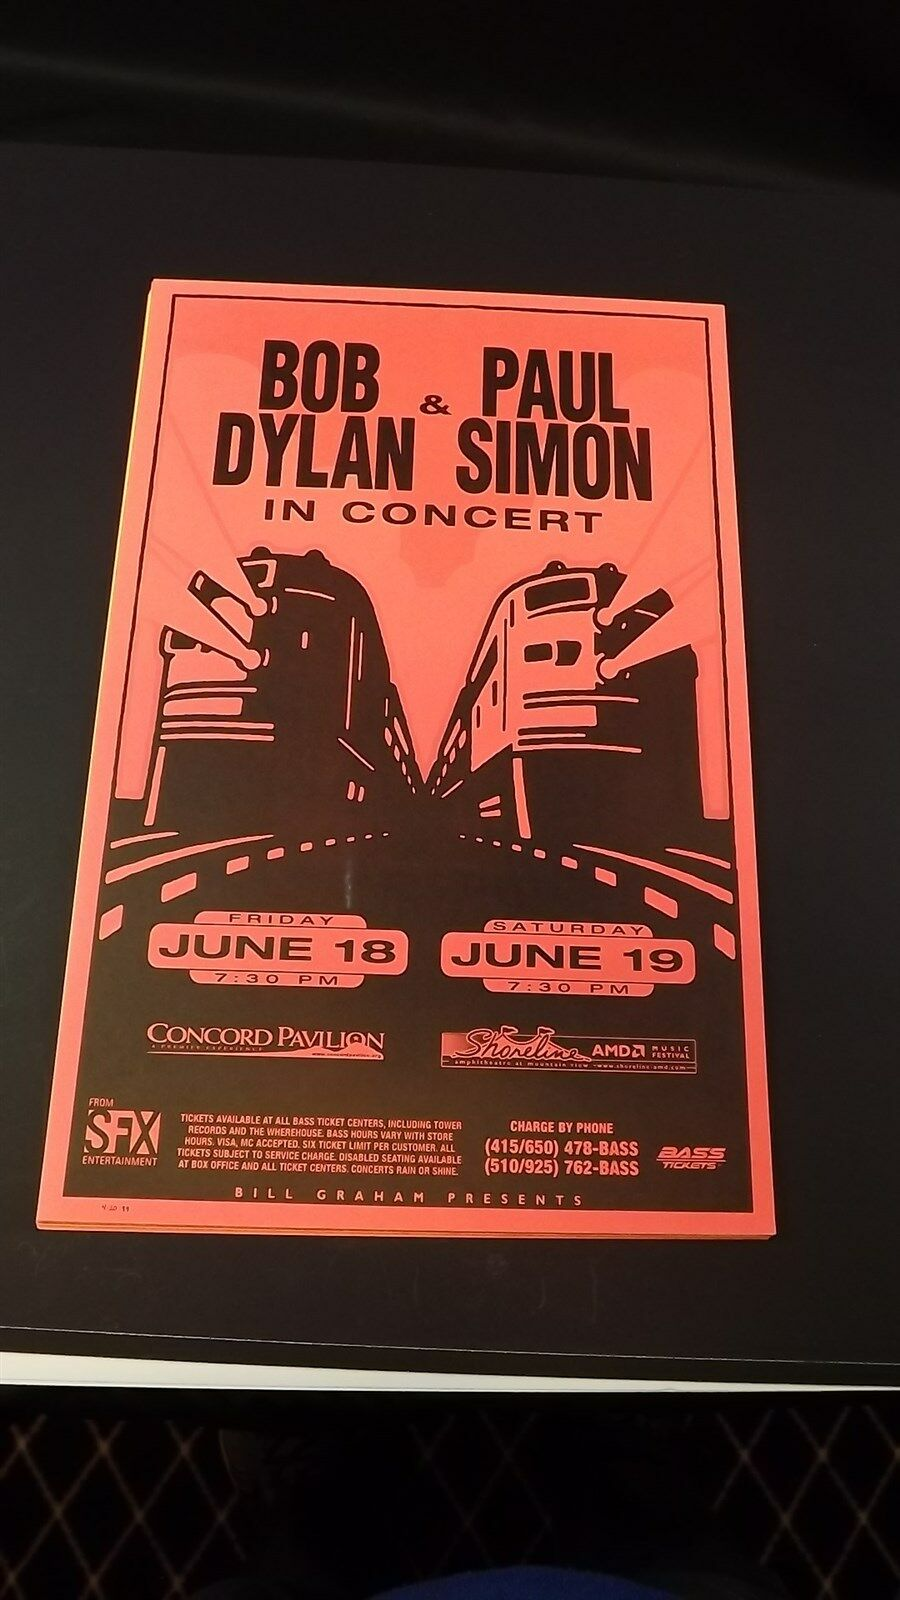 Genuine 1999 BOB DYLAN & PAUL SIMON In Concert Shoreline Poster Flyer Ad 1